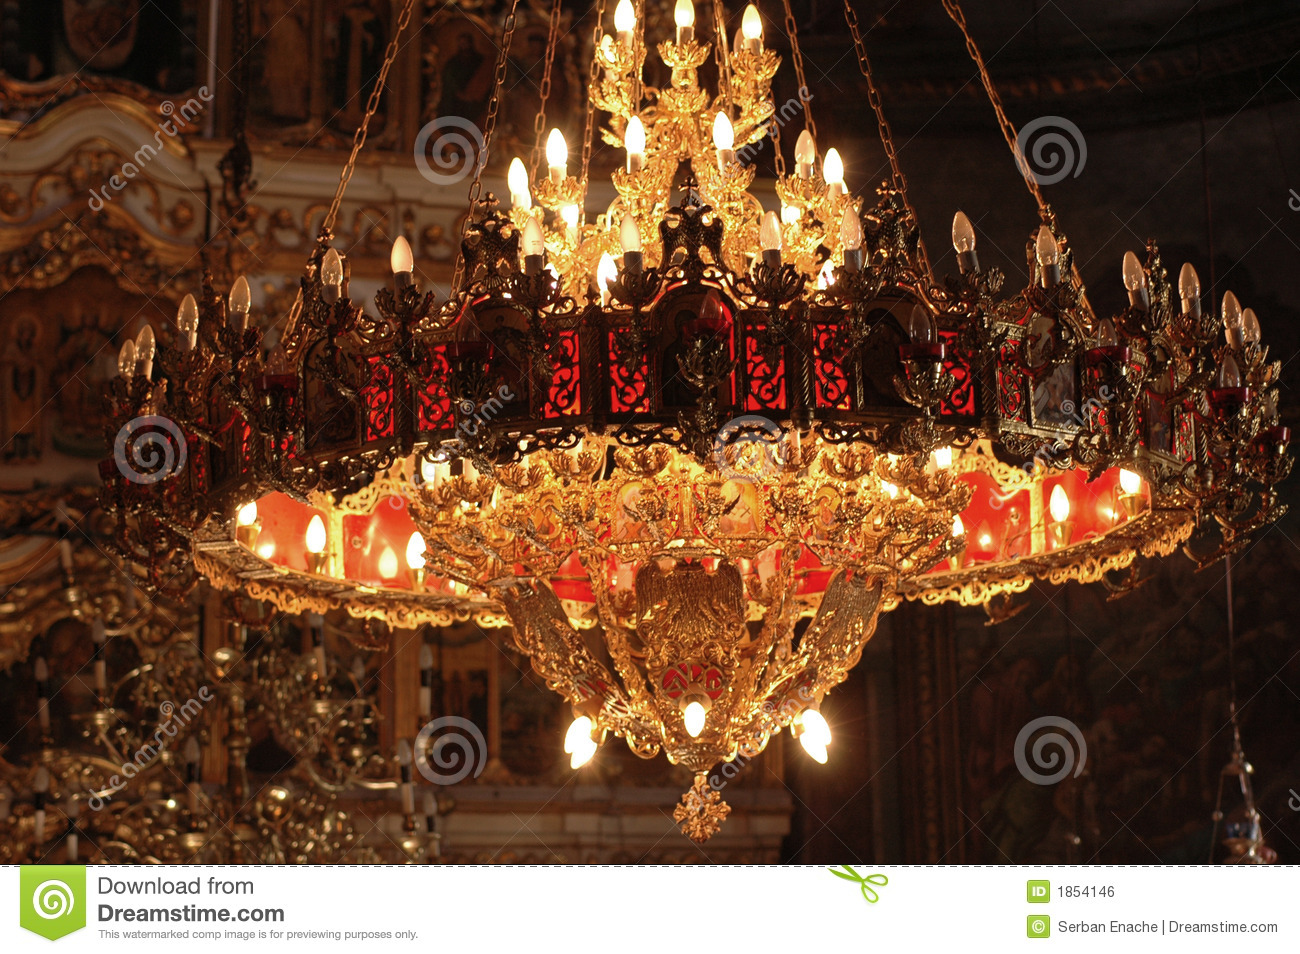 Lighting Lampen Chandelier In An Orthodox Church Stock Photo - Image: 1854146